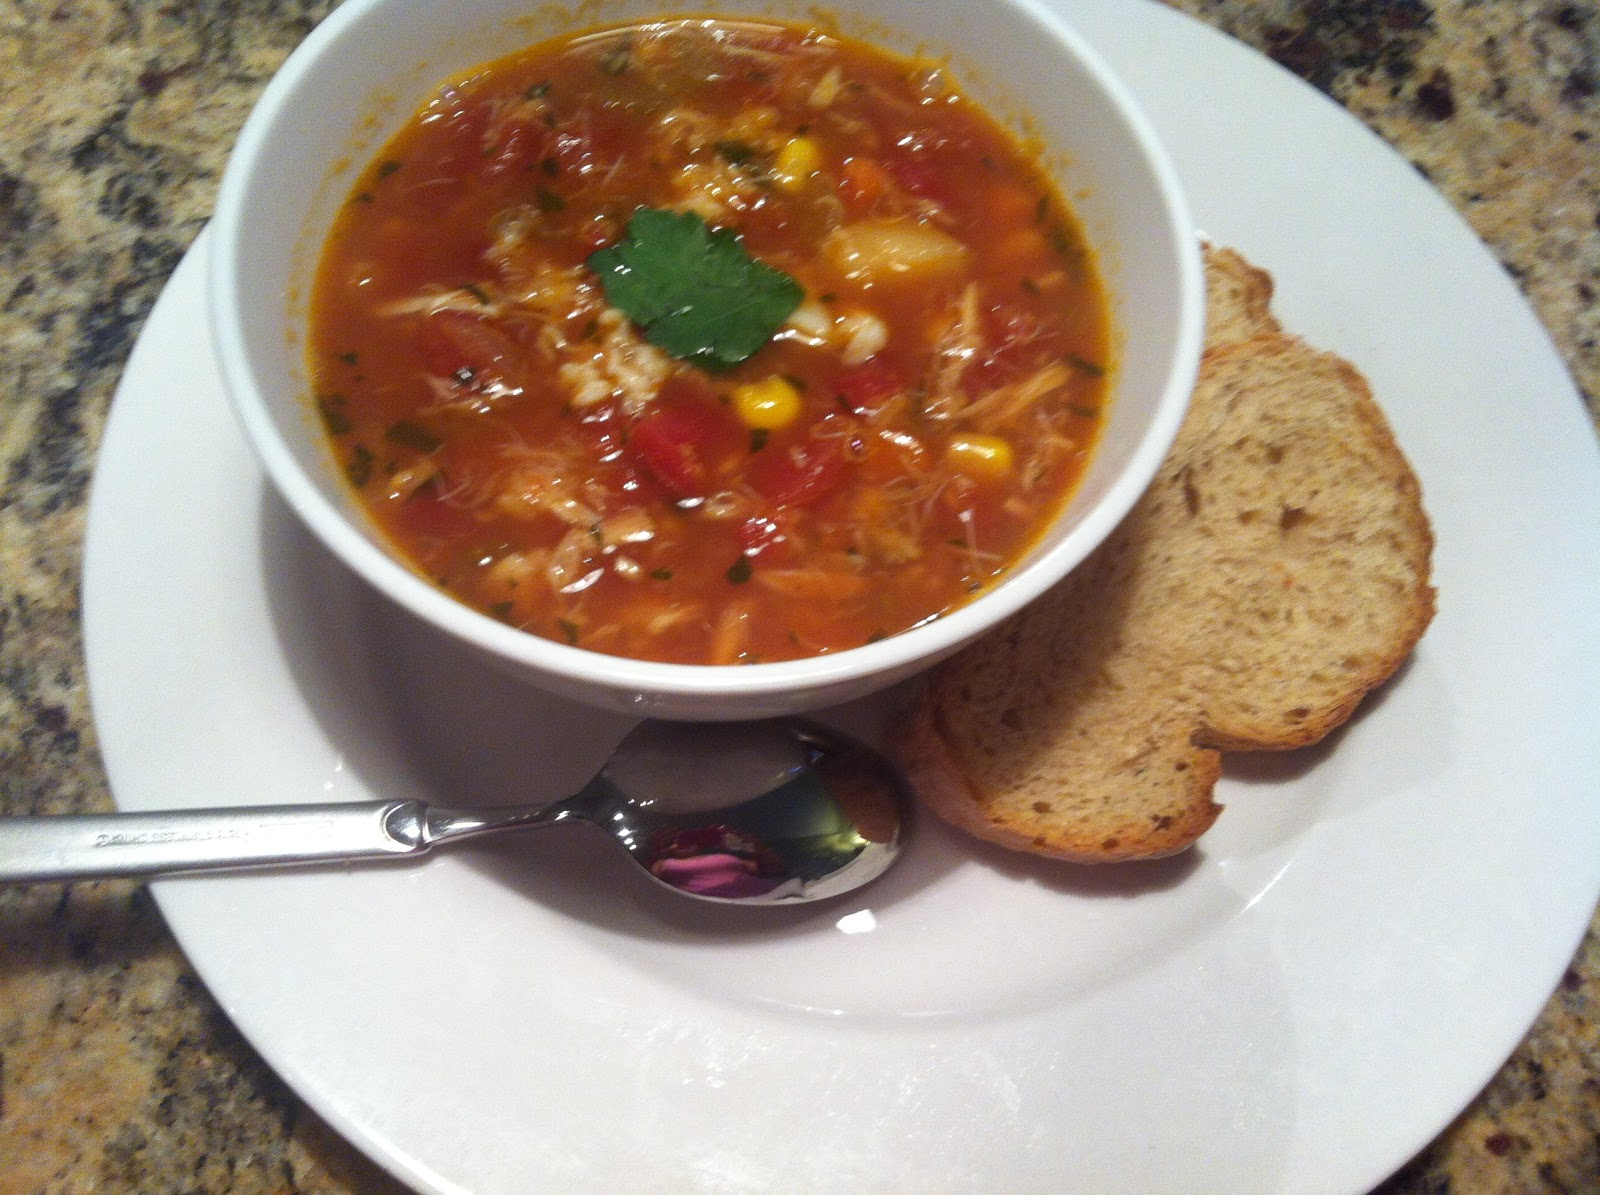 April's Cookin': Maryland Crab Soup